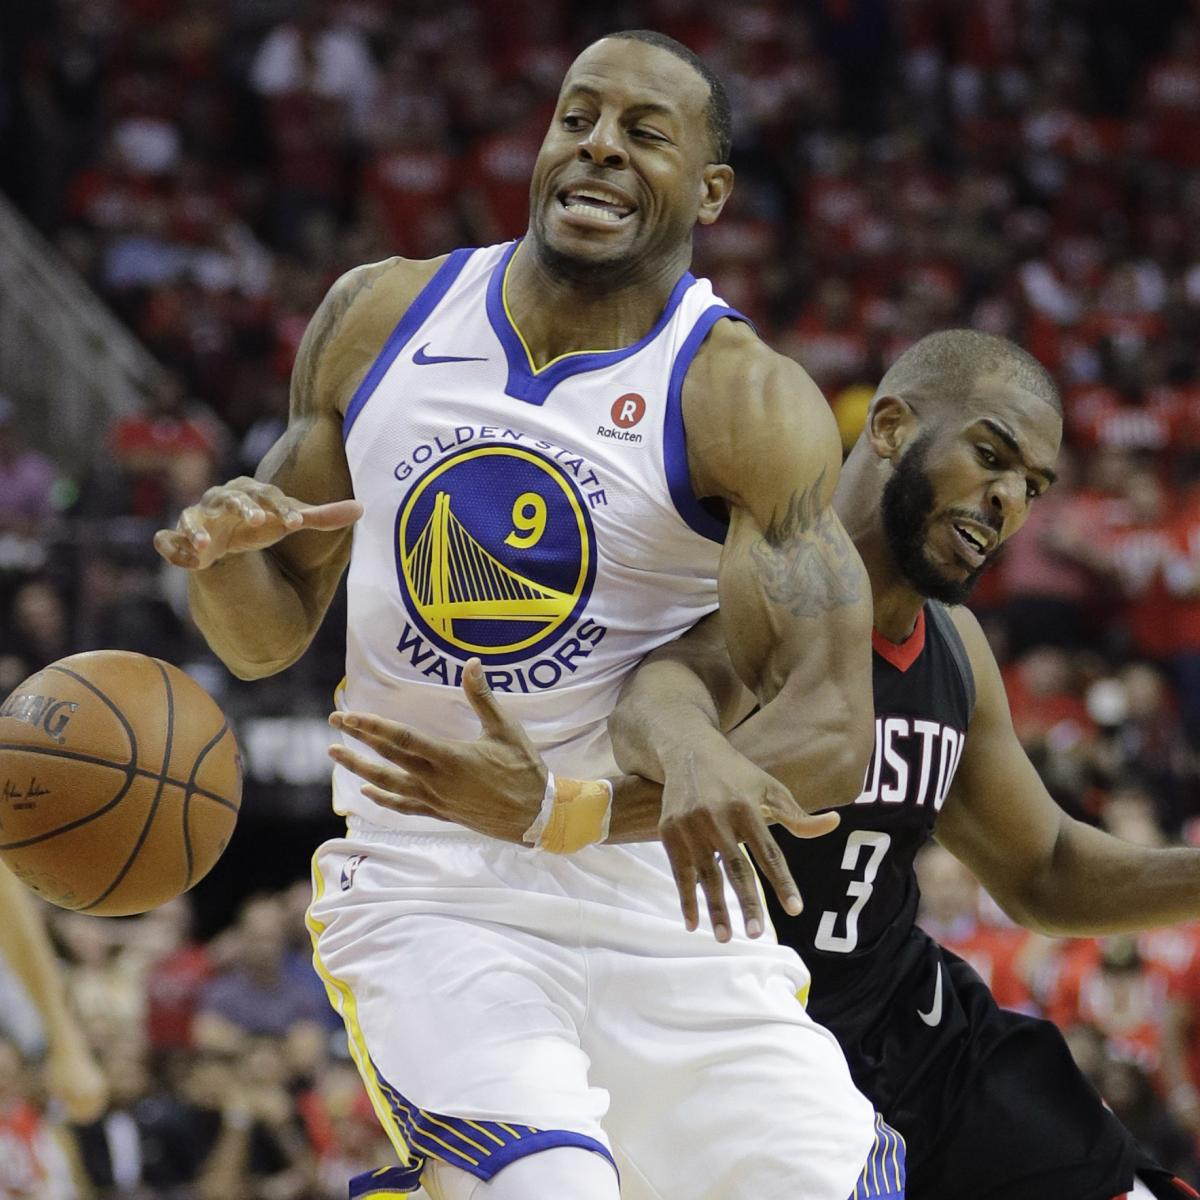 Warriors Come Out To Play Bleacher Report: Warriors' Andre Iguodala Doubtful For Game 4 Vs. Rockets